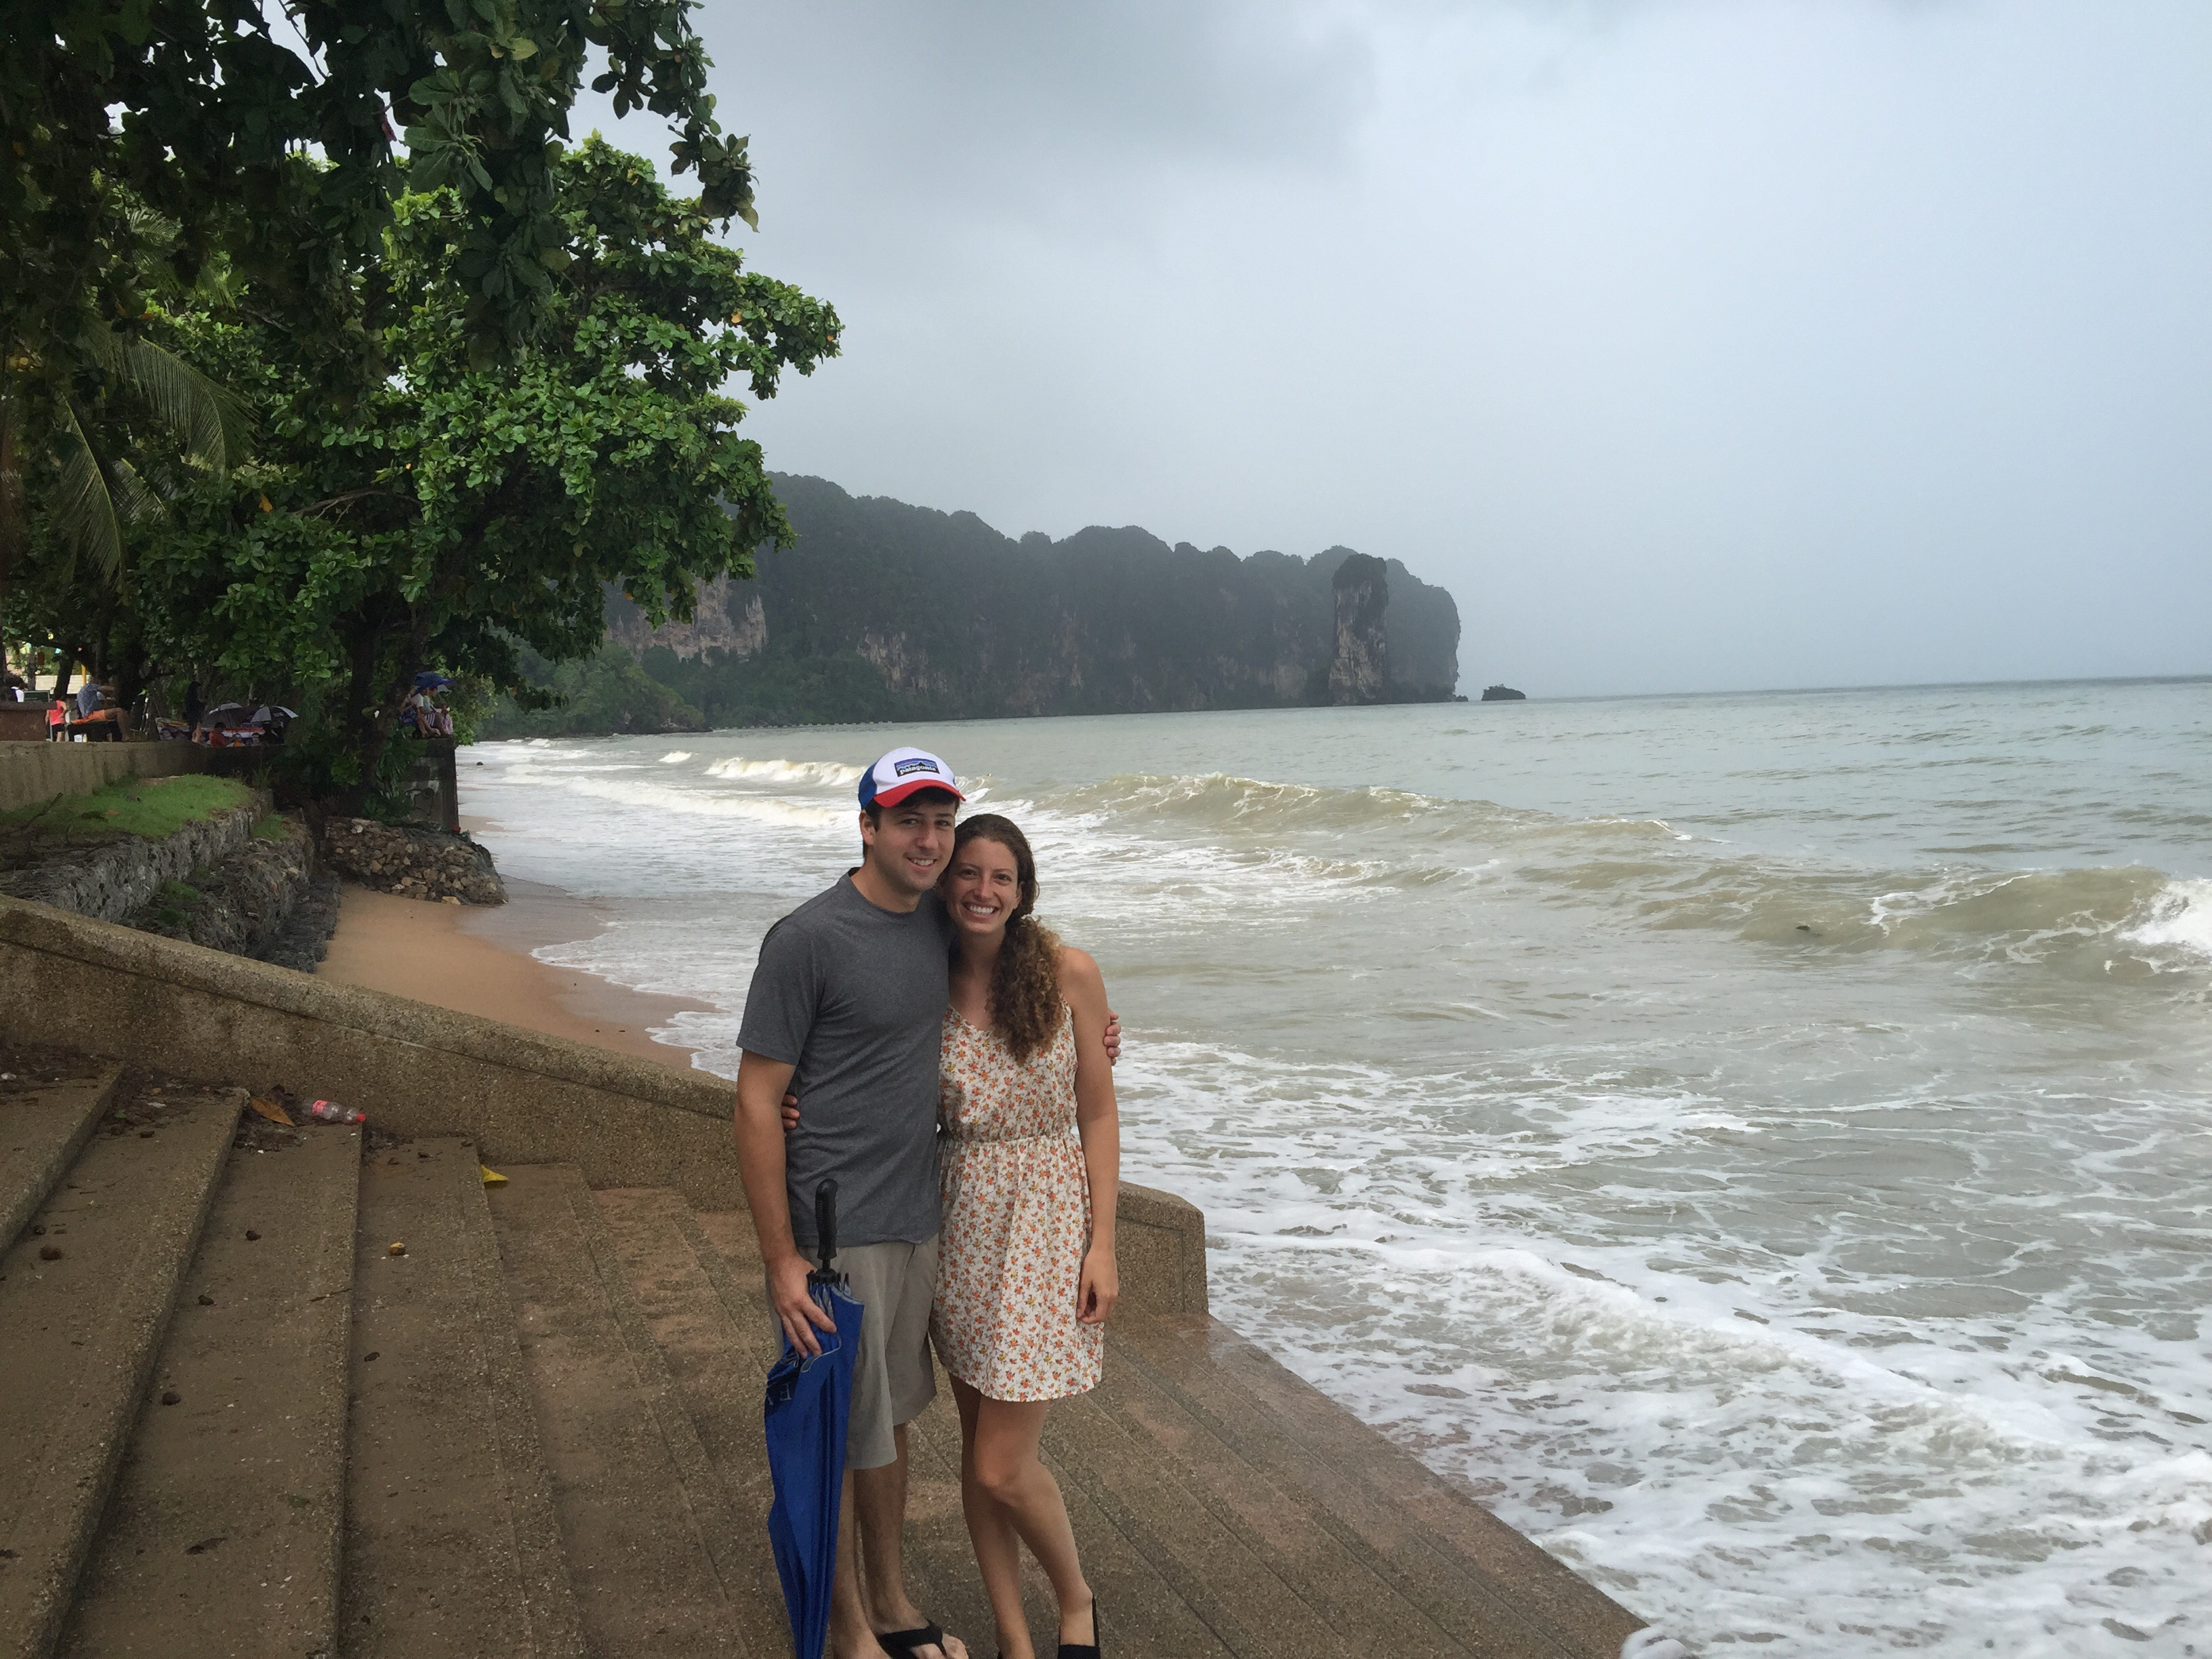 Aonang Beach, Krabi: Emerald Pool, Hot Springs and RAIN RAIN RAIN